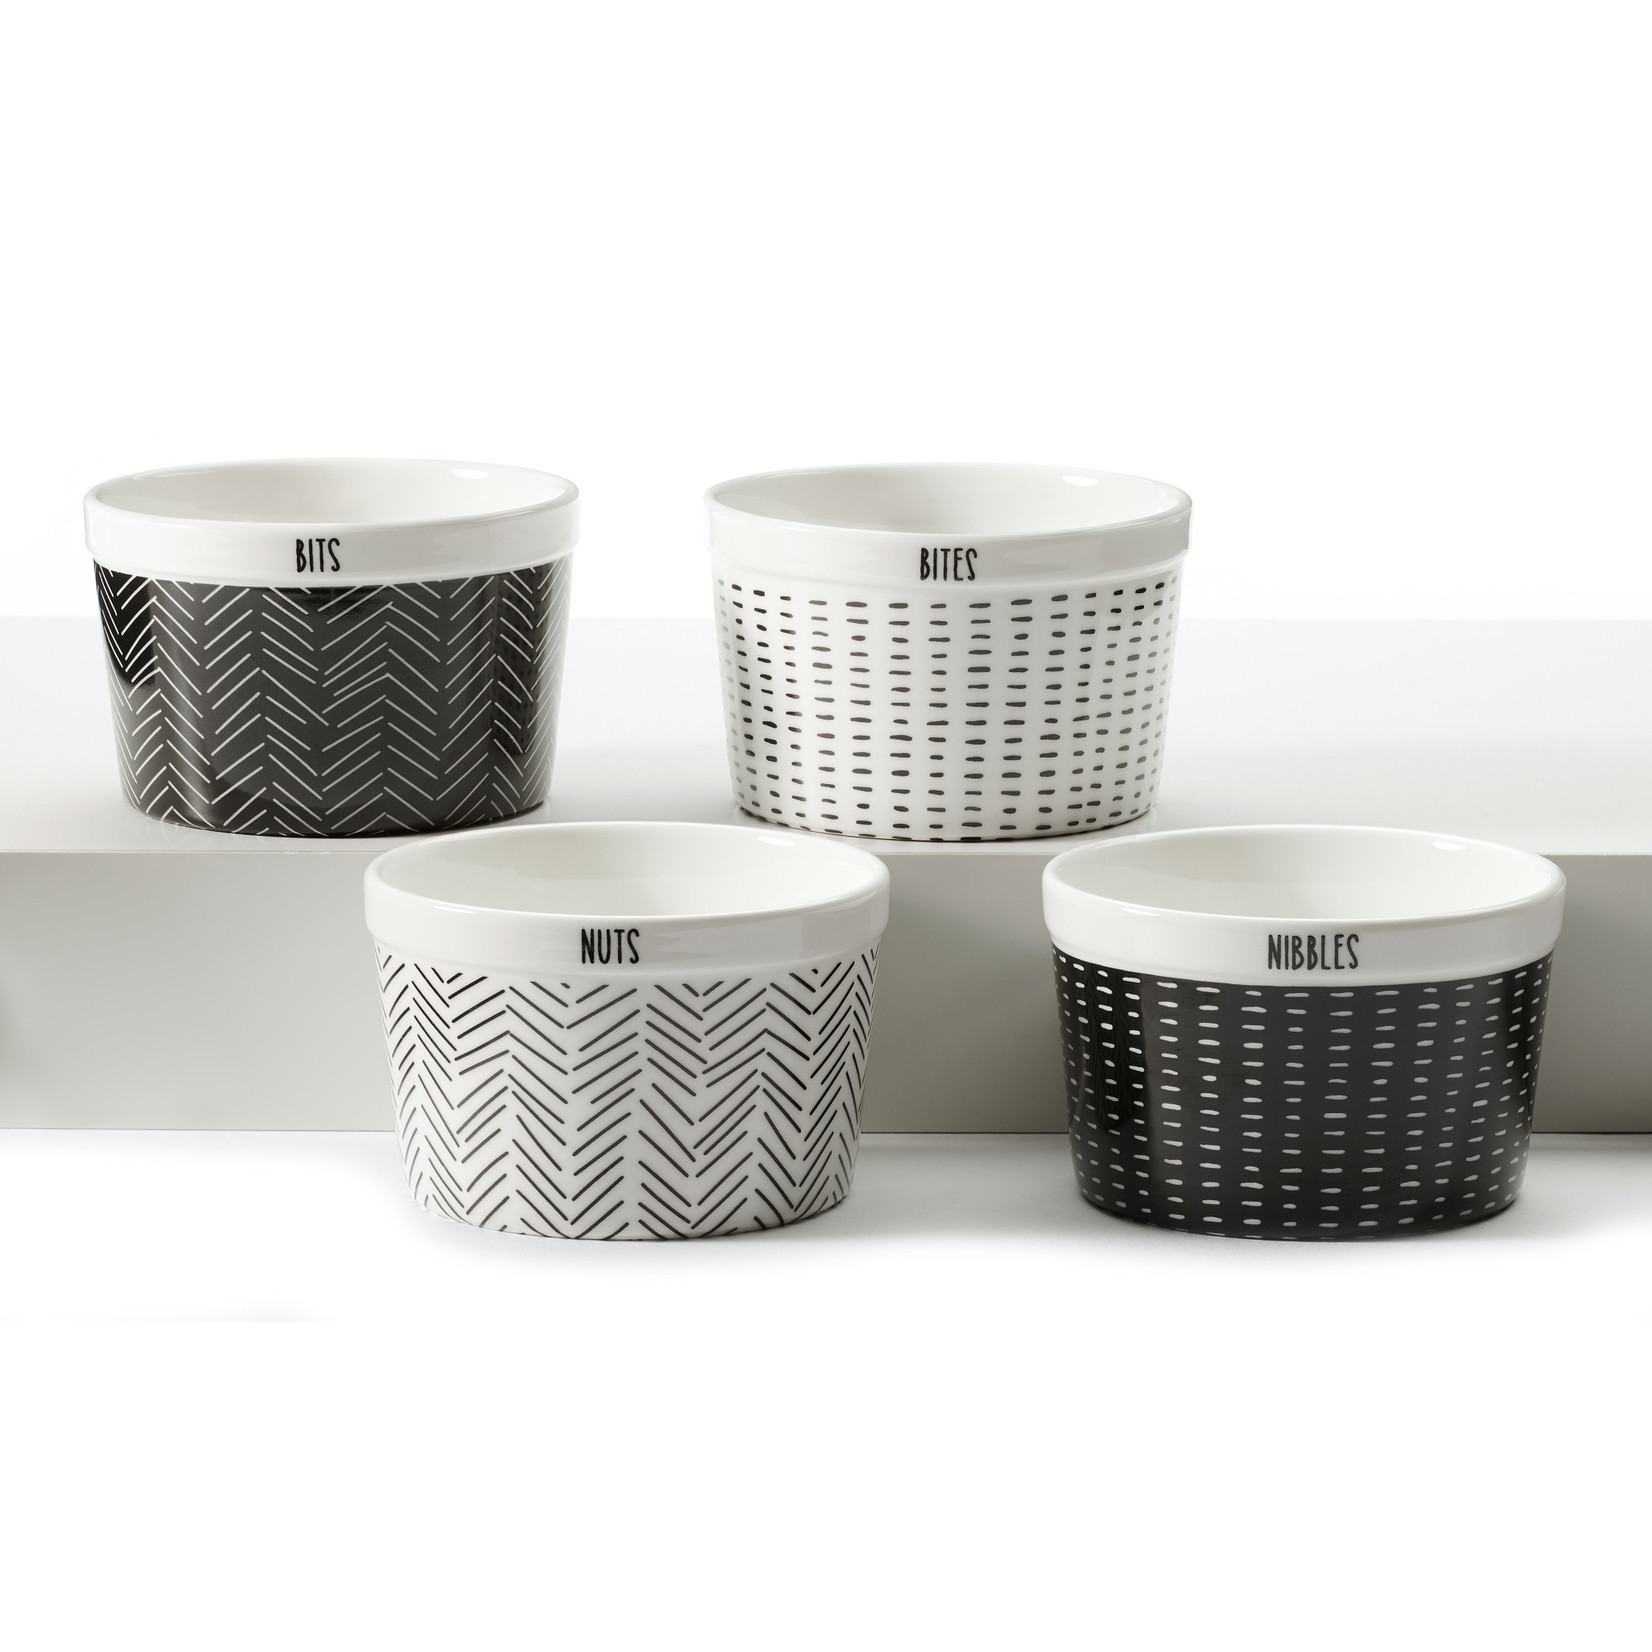 Be Our Guest Snack Bowl Set of 4